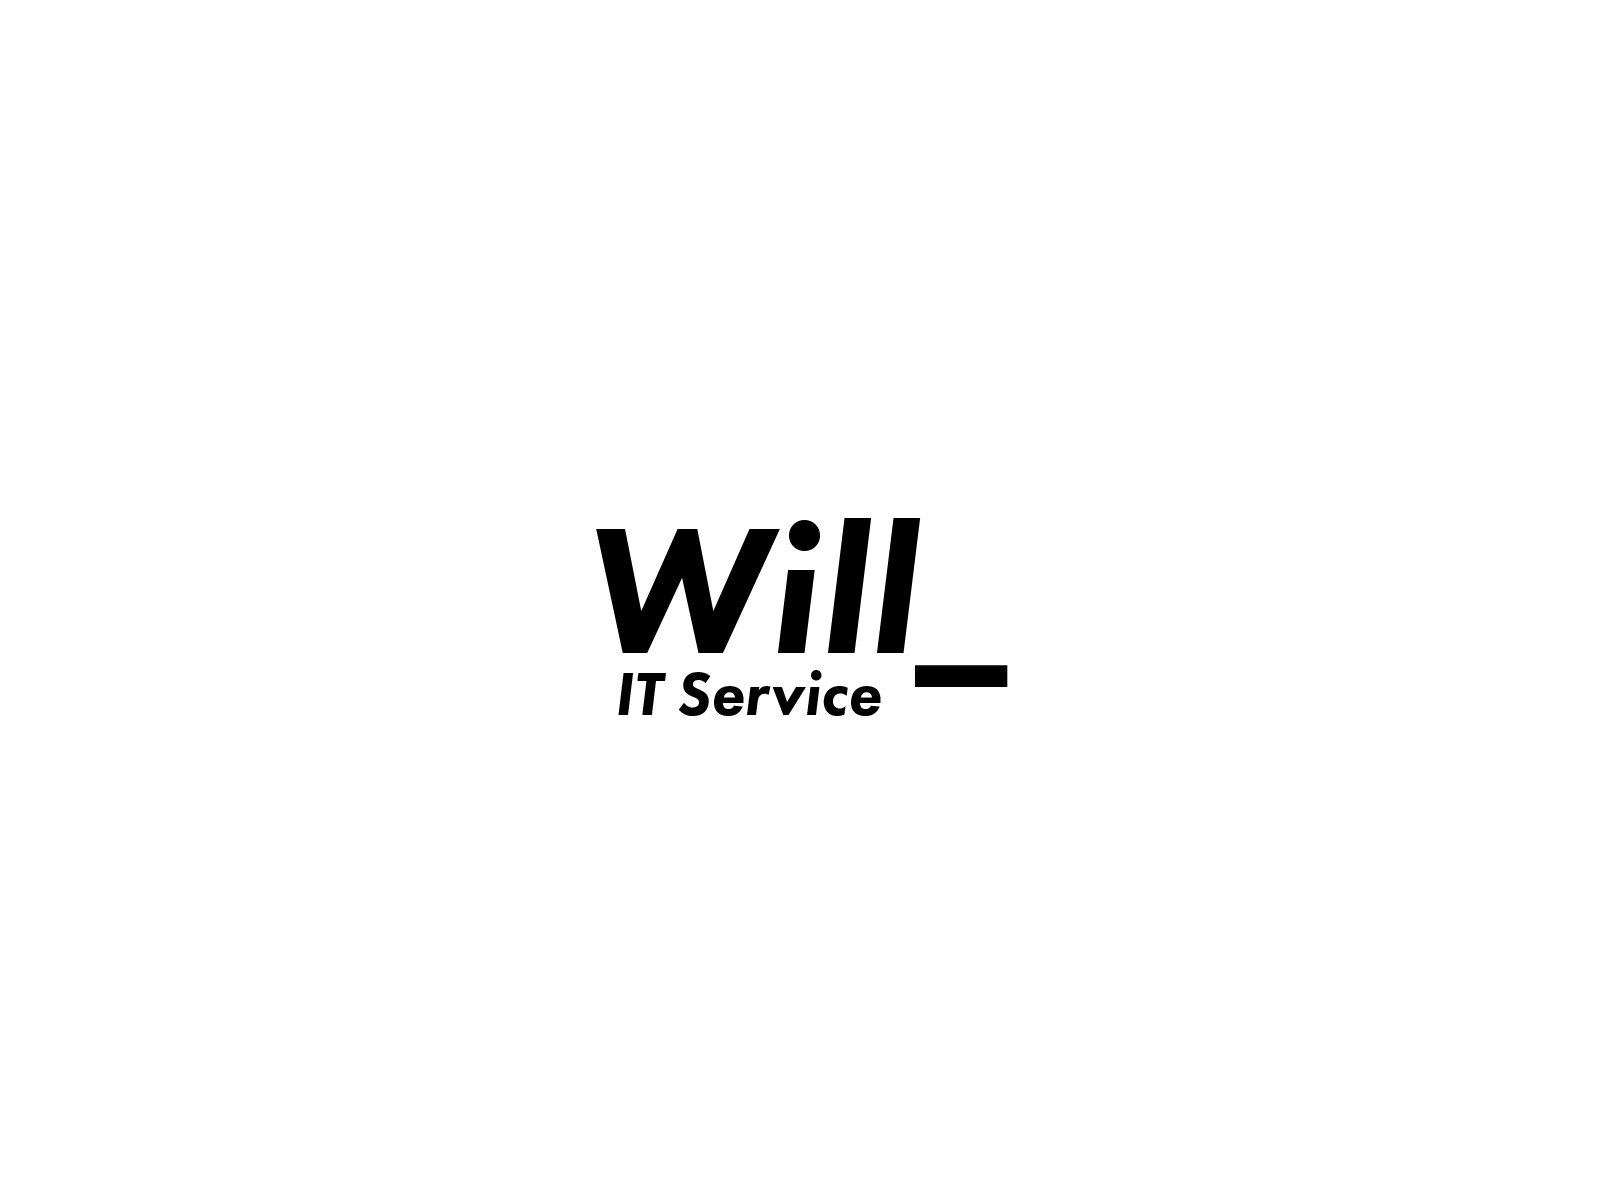 210405 Small Projects itwill logo